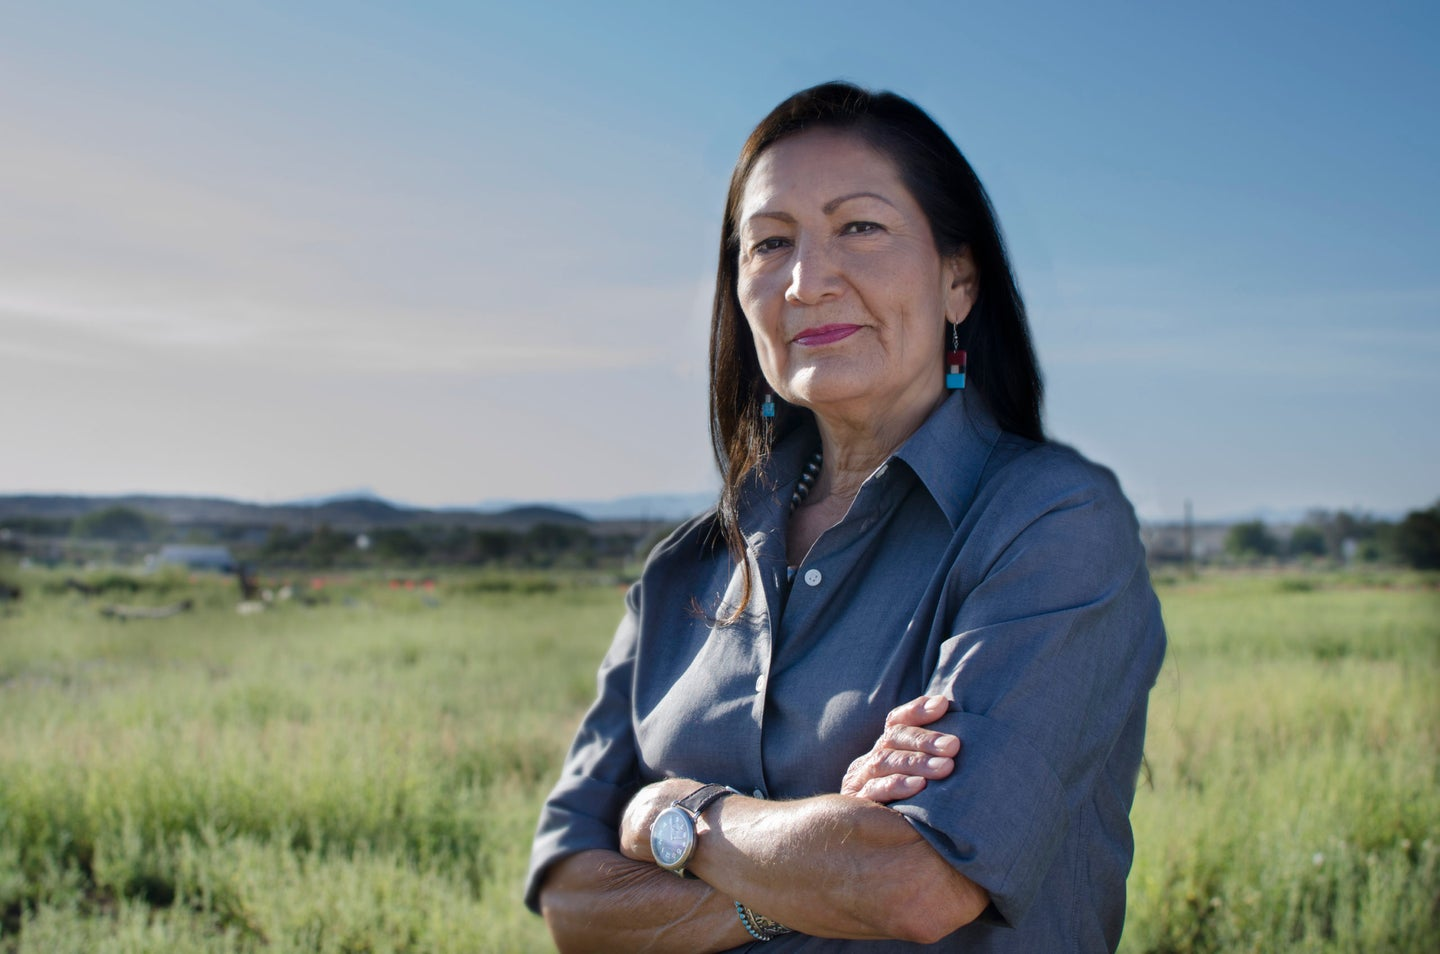 A New Mexican woman with dark hair and turquoise earrings crosses her arms and looks at the camera in an open field.